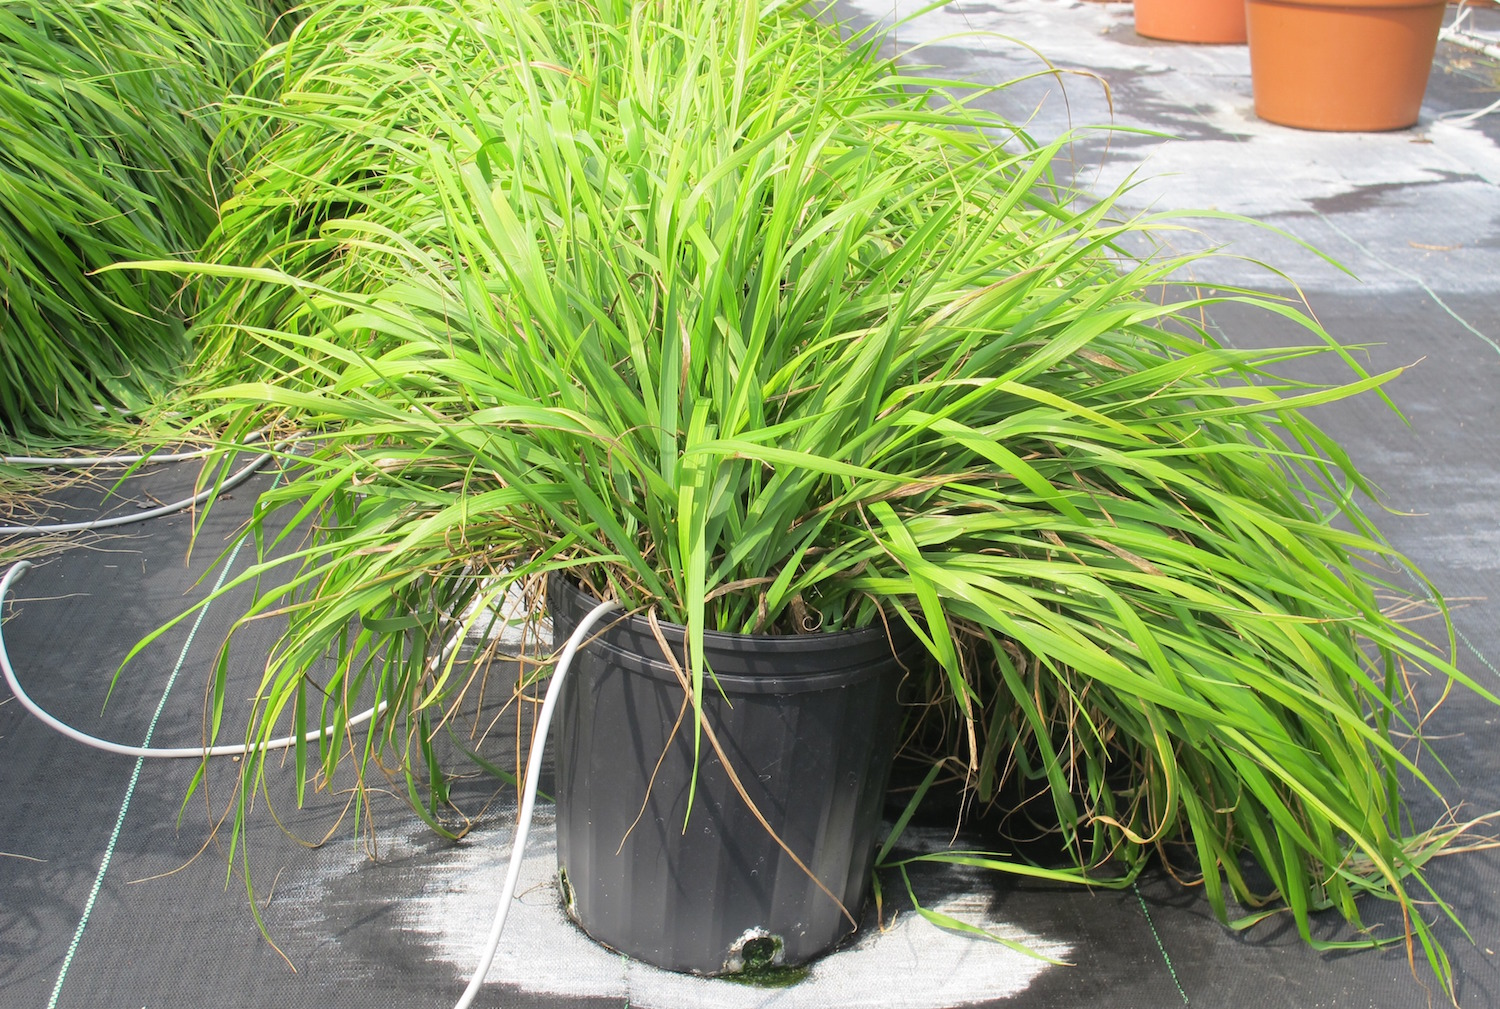 Research confirms Native use of sweetgrass as bug repellent